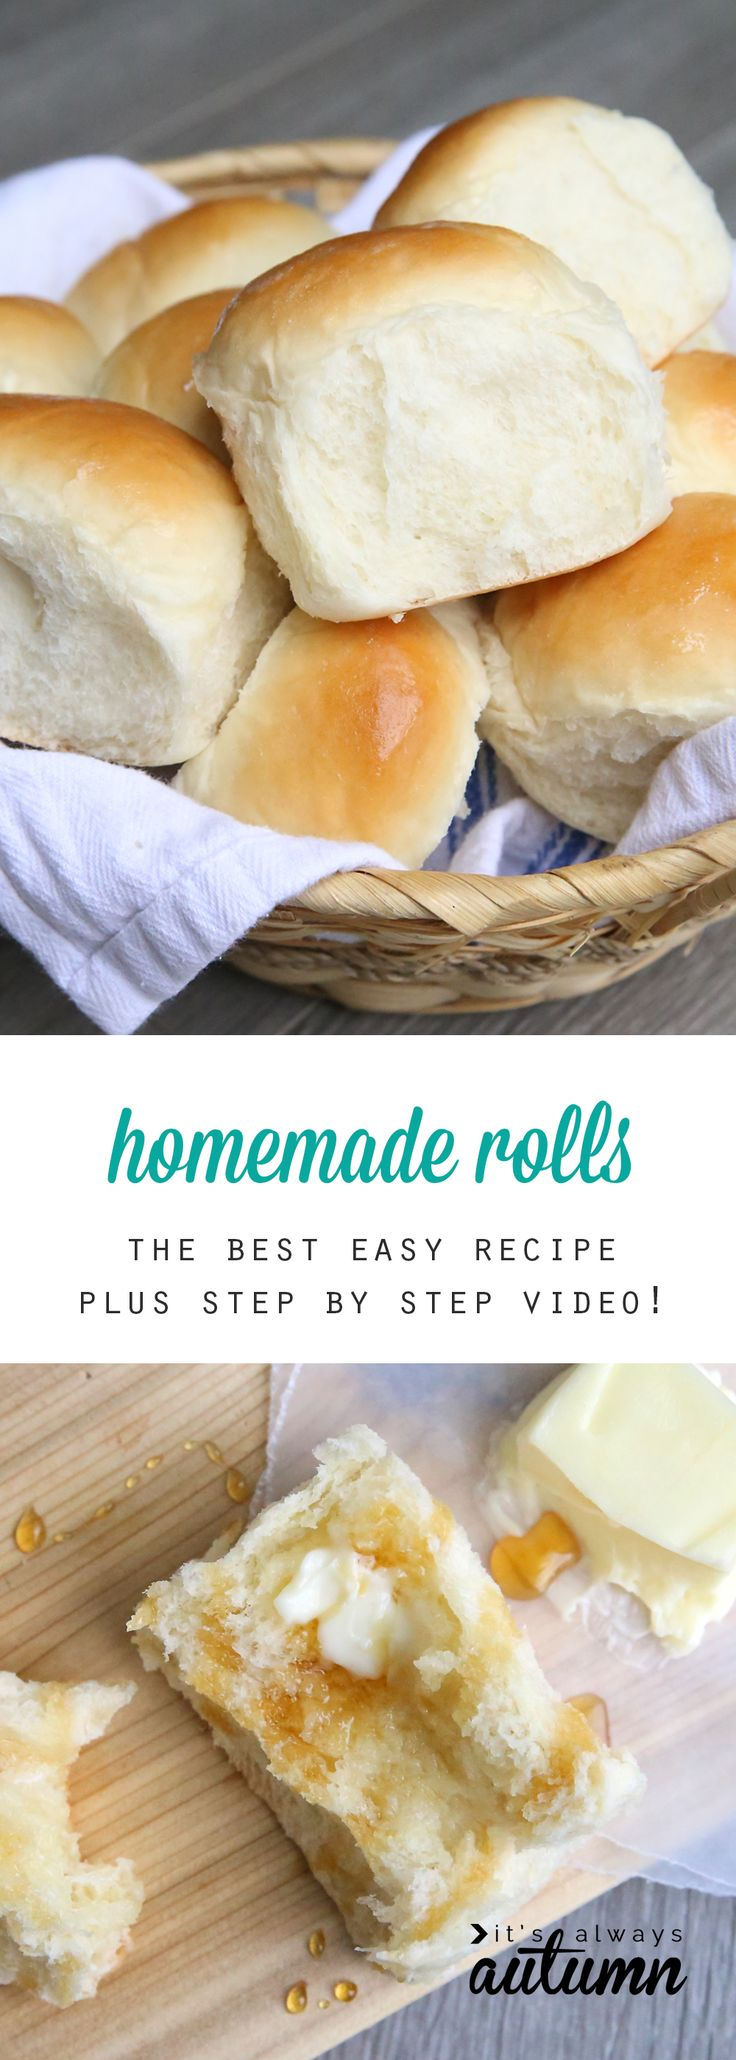 This is THE BEST easy homemade dinner rolls recipe, and there's even a video tutorial that walks you through every step of the instructions. You can use this recipe to make bread, cinnamon rolls, breadsticks, and more! It's delicious.